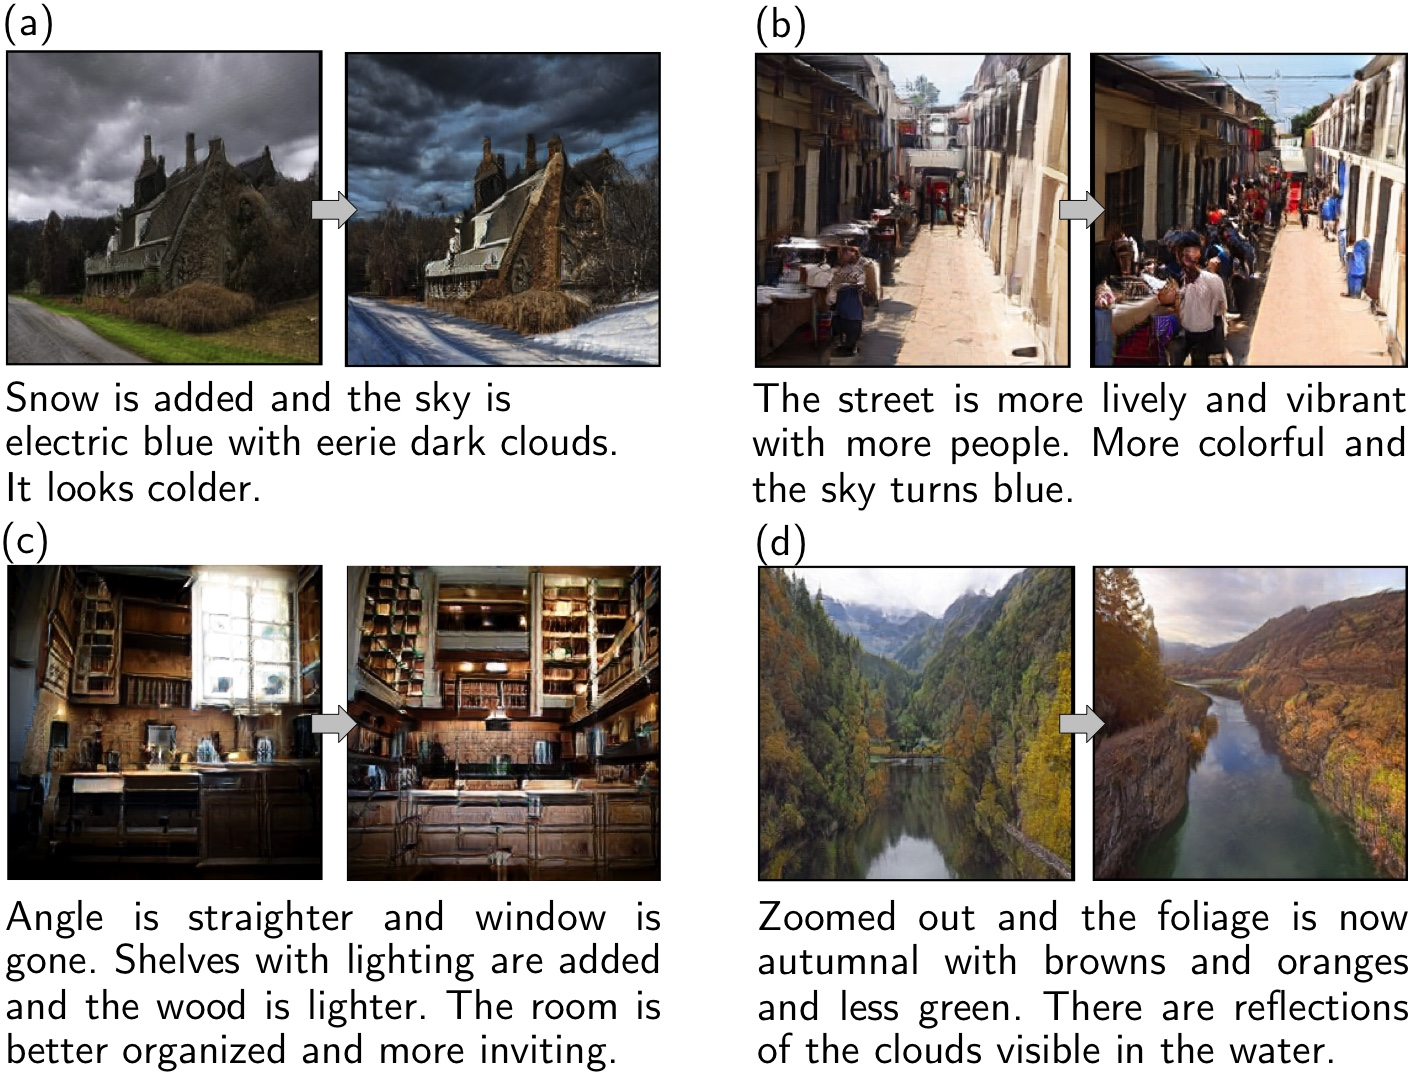 Sample transformations and AMT annotations from all four image classes: (a) cottage, (b) medina, (c) kitchen, (d) lake.